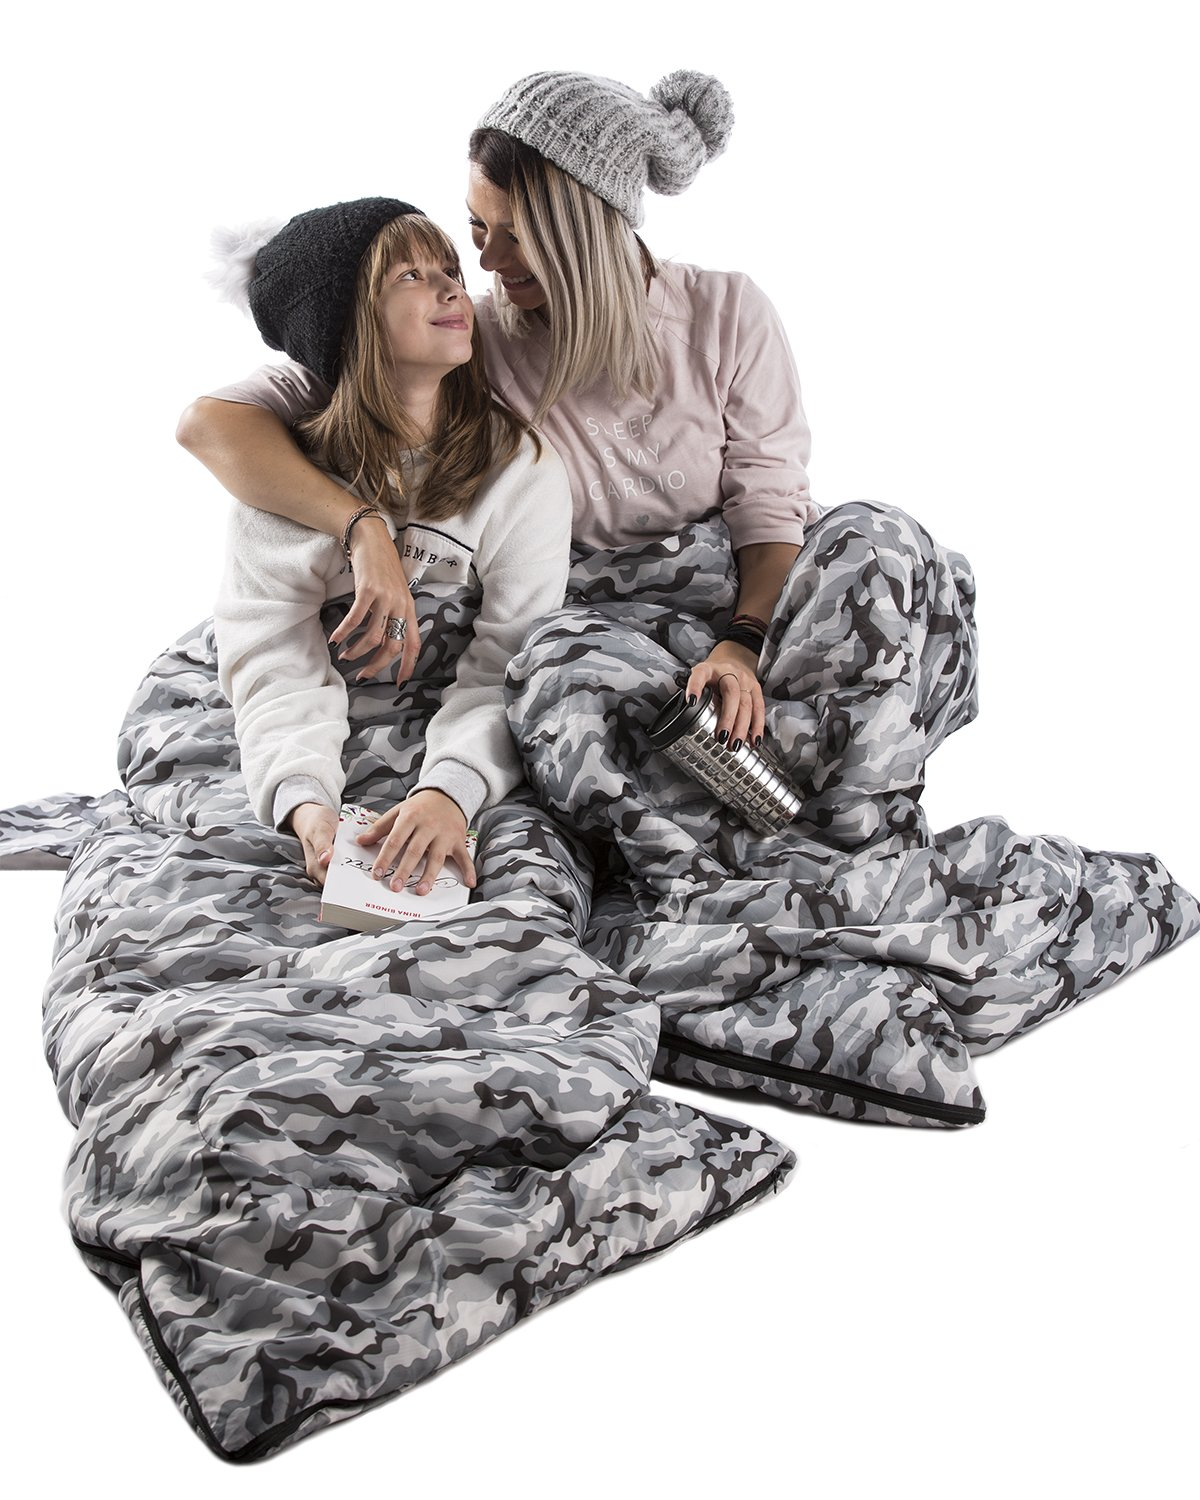 Extra Large 3 Season Waterproof Sleeping Bag for 2 Person Adults Chillax Perfect Sleeping Sack for Couples Backpacking or Hiking WellaX Double Sleeping Bag for Camping